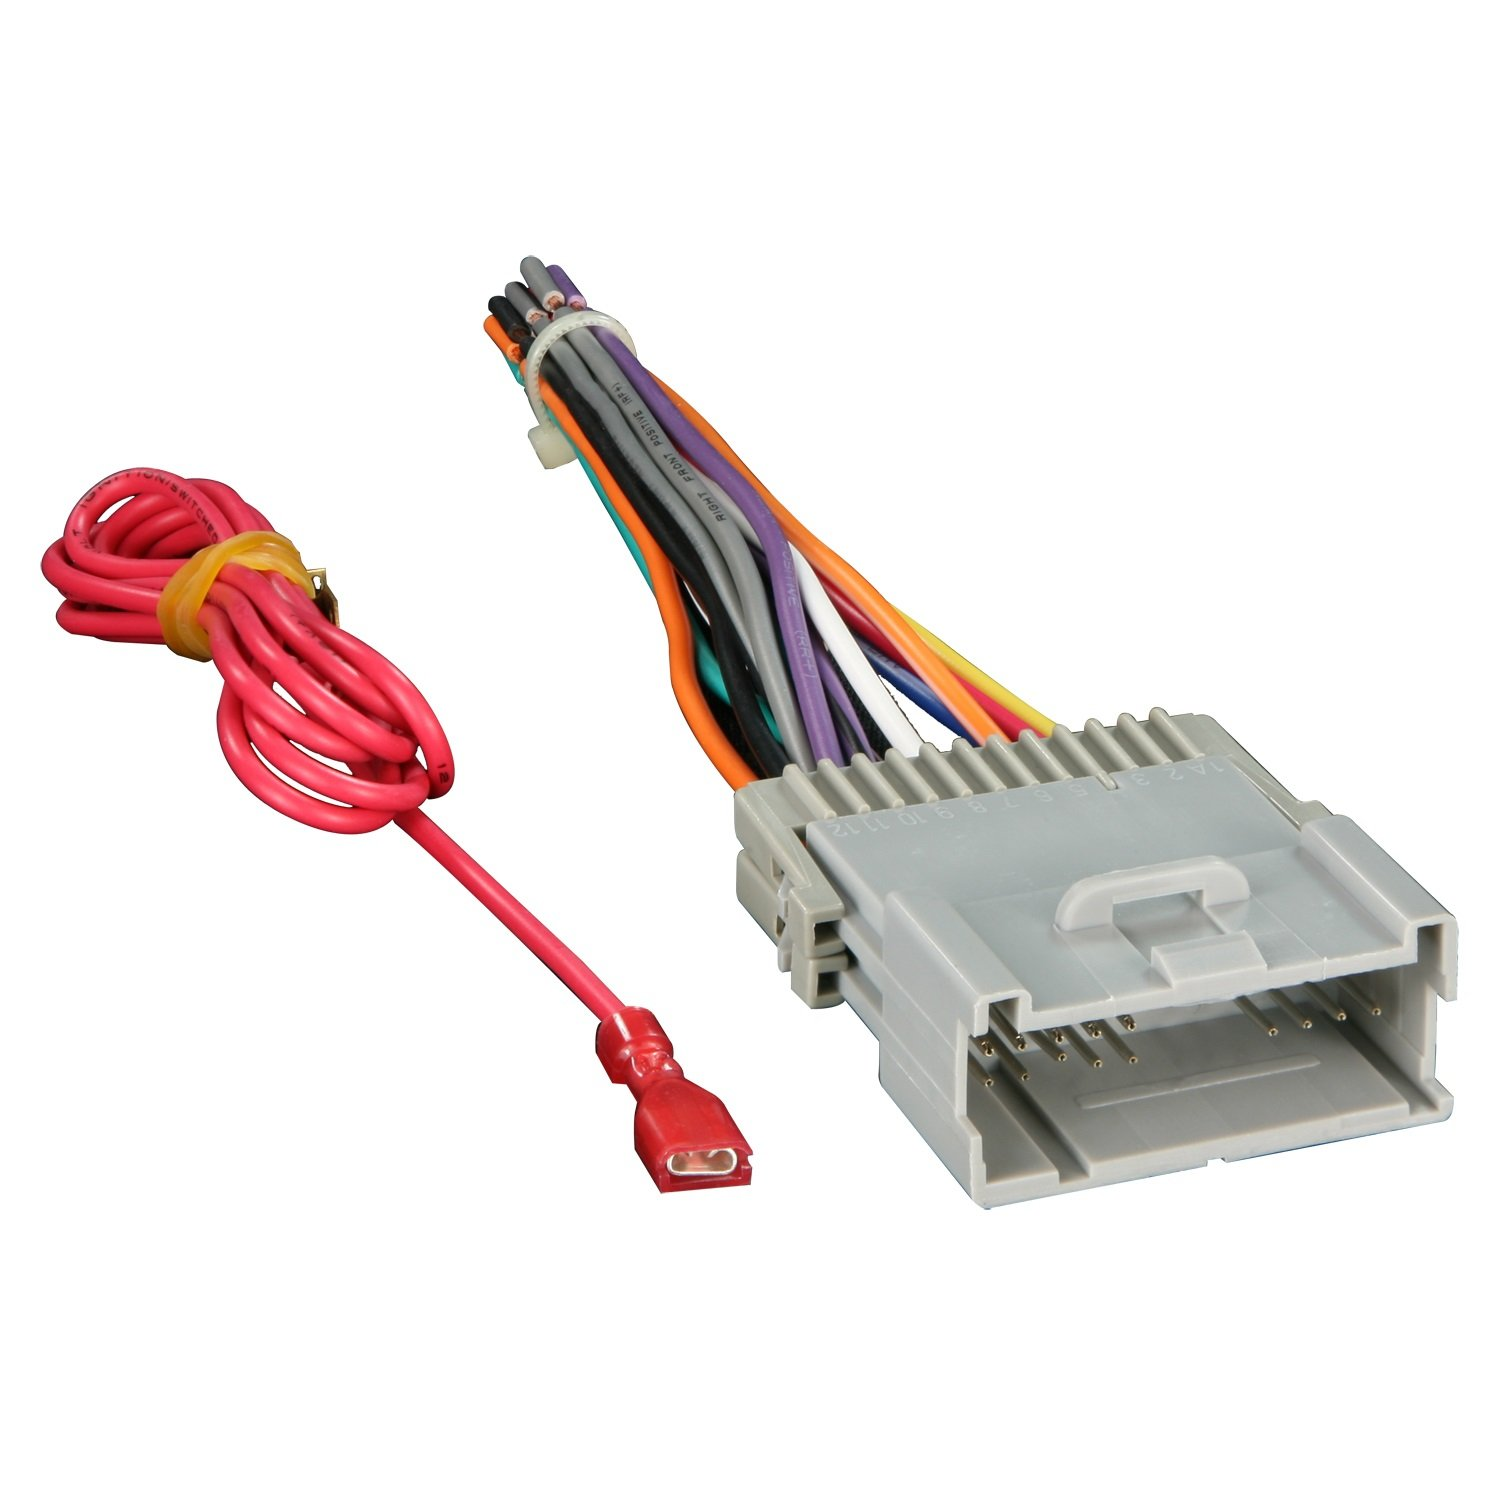 61eewxp9orL._SL1500_ amazon com metra 70 2003 radio wiring harness for gm 98 08 Ddx771 Kenwood Wire Harness at bakdesigns.co